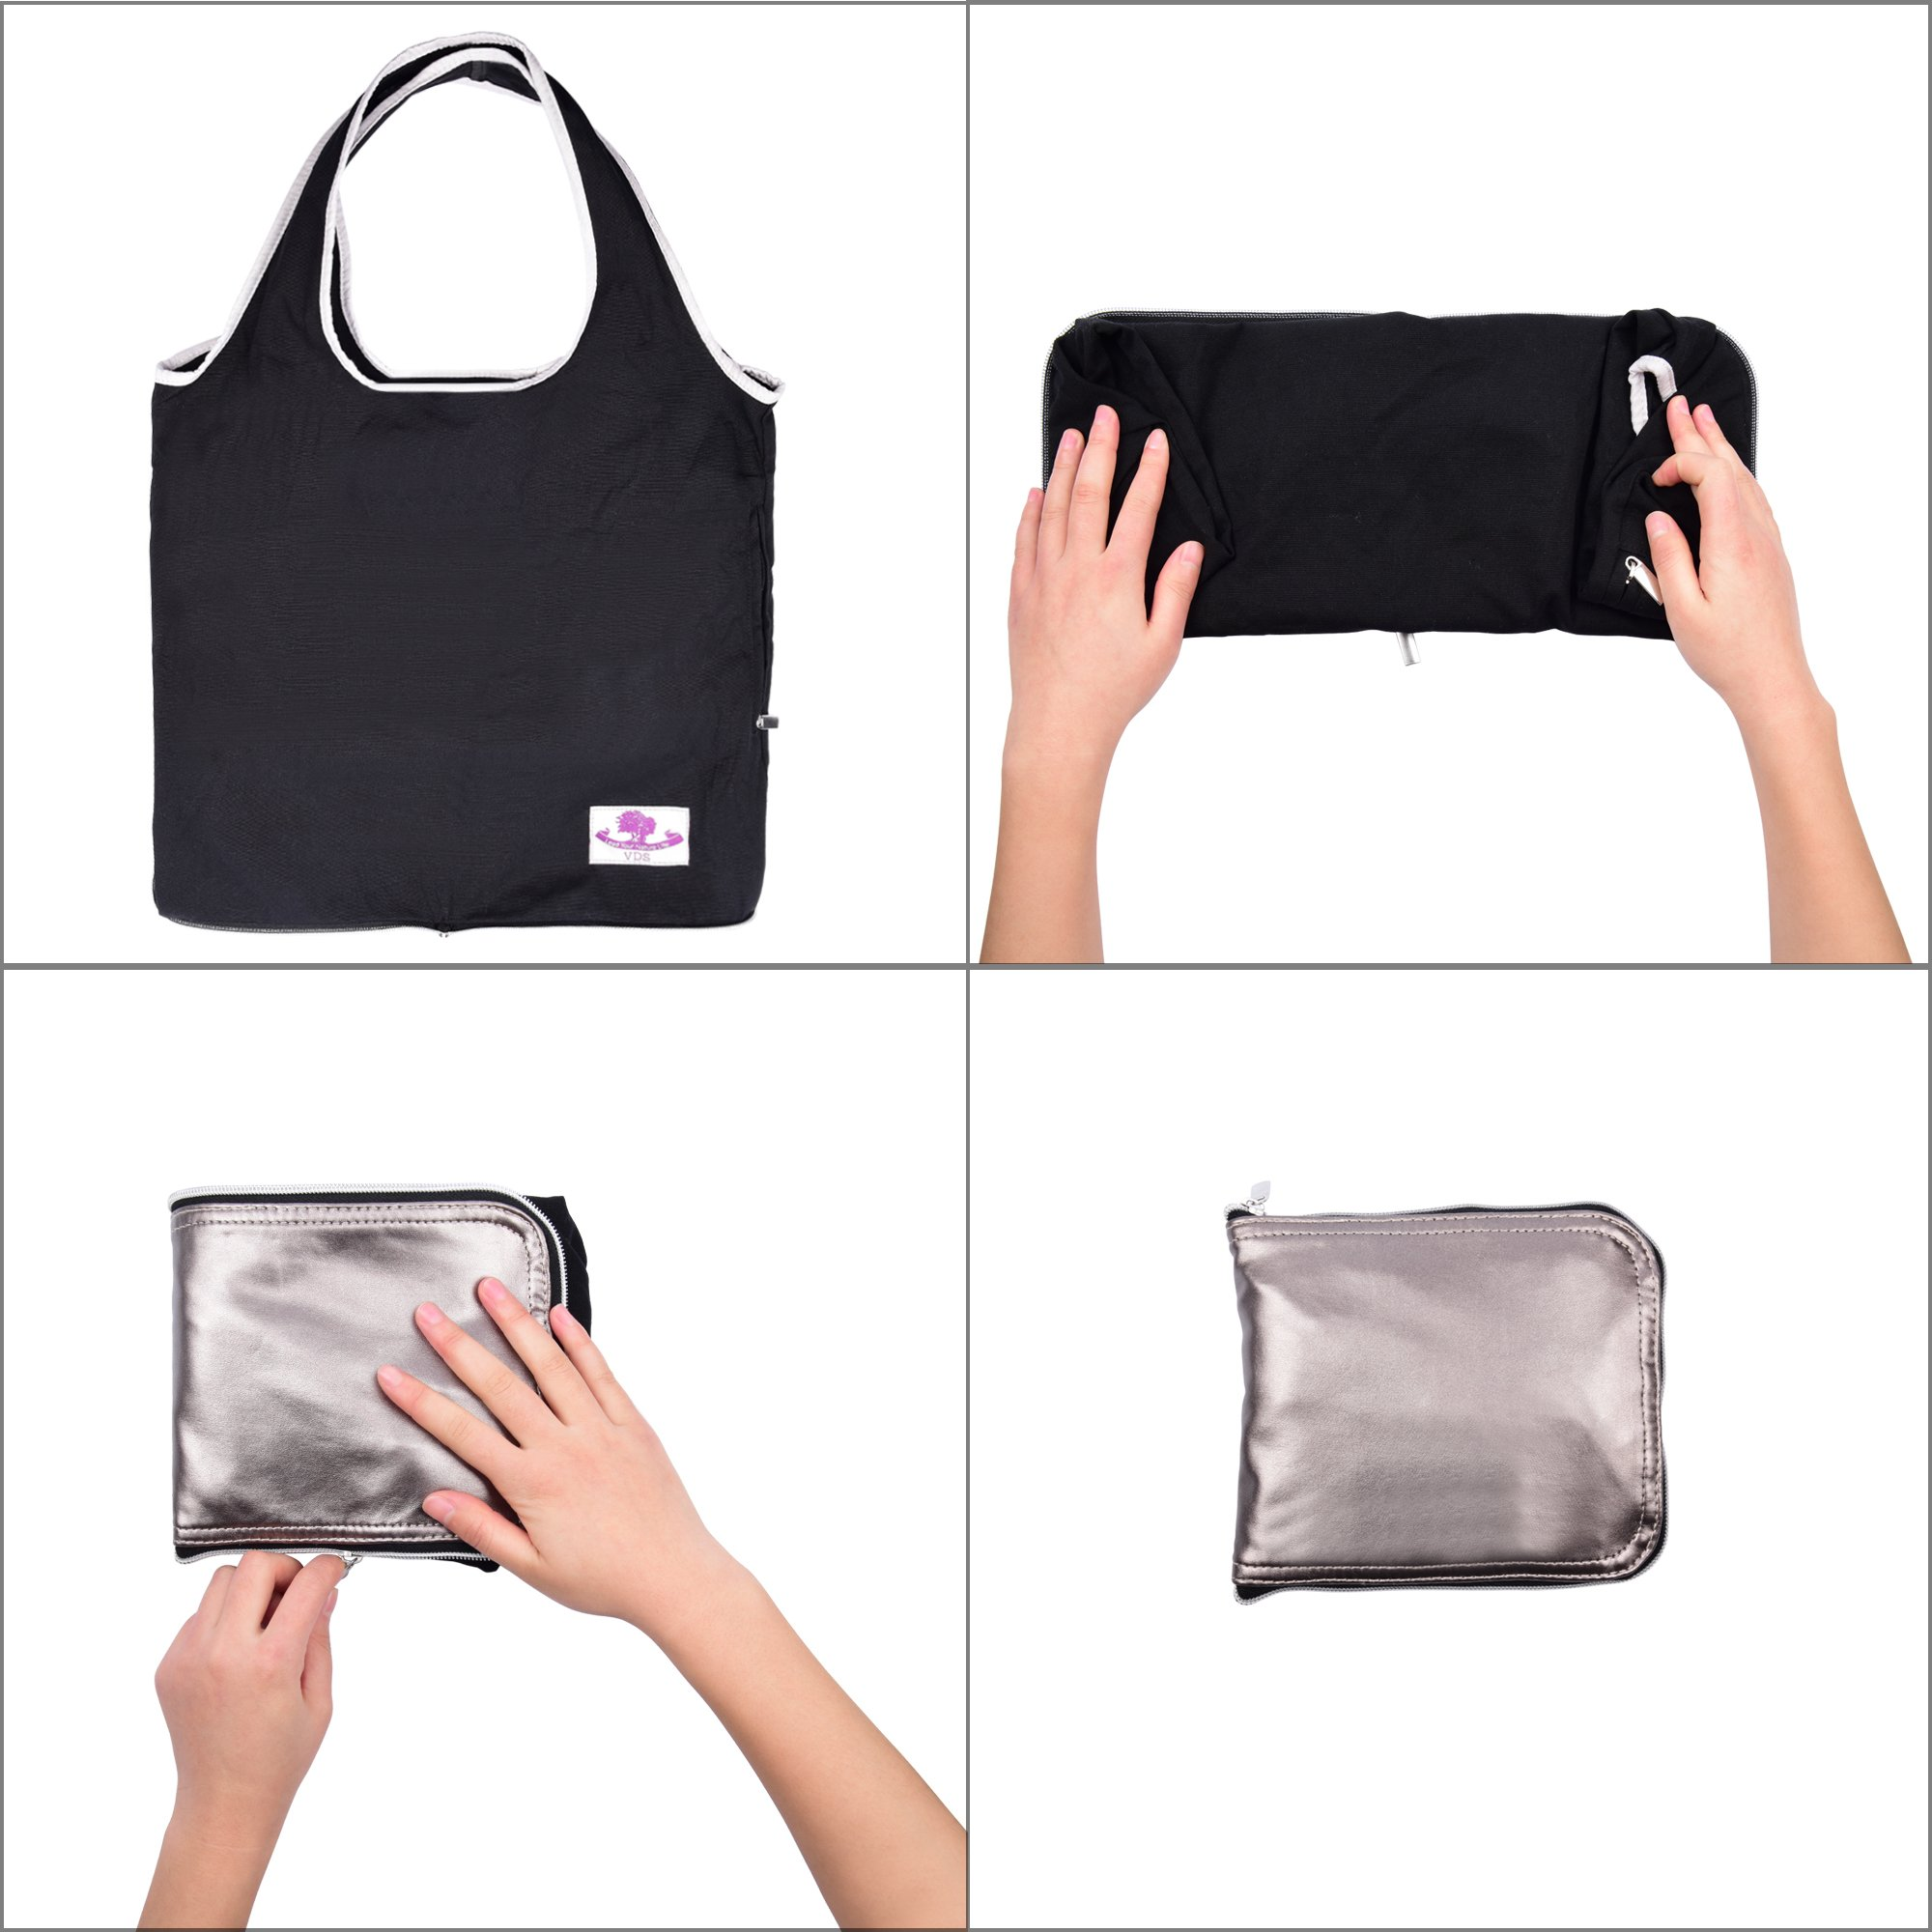 VDS Reusable Grocery Bags, Large Eco Friendly Foldable Grocery Tote Bag Heavy Duty Washable Shopping Bags